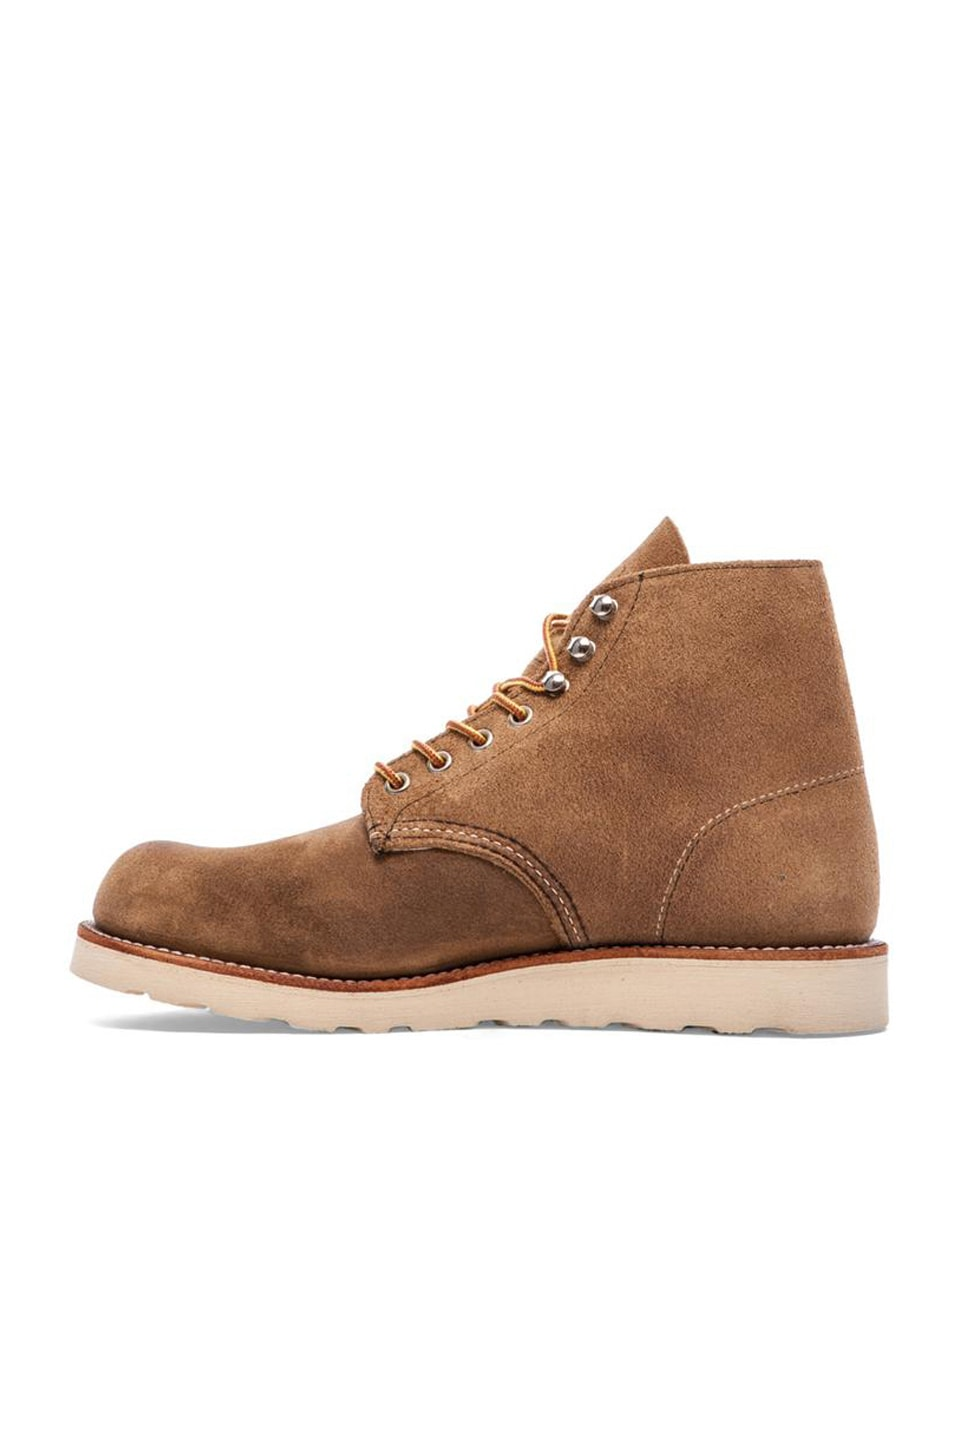 "Red Wing Shoes 6"" Round Toe in Hawthorne"